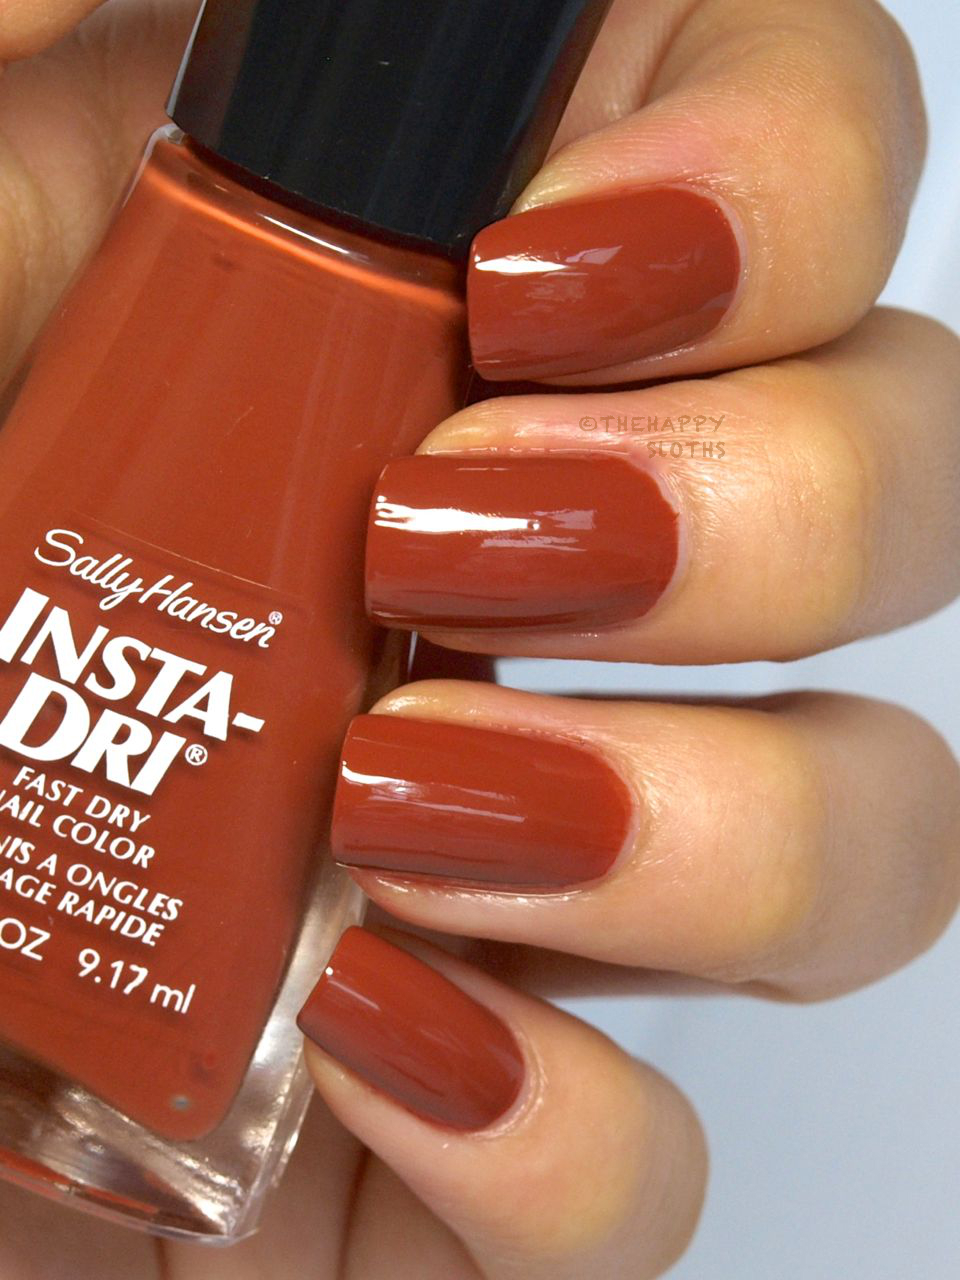 Sally Hansen Insta-Dri Moroccan Spice Market Collection Nail Polish in Moracc-go: Review and Swatches